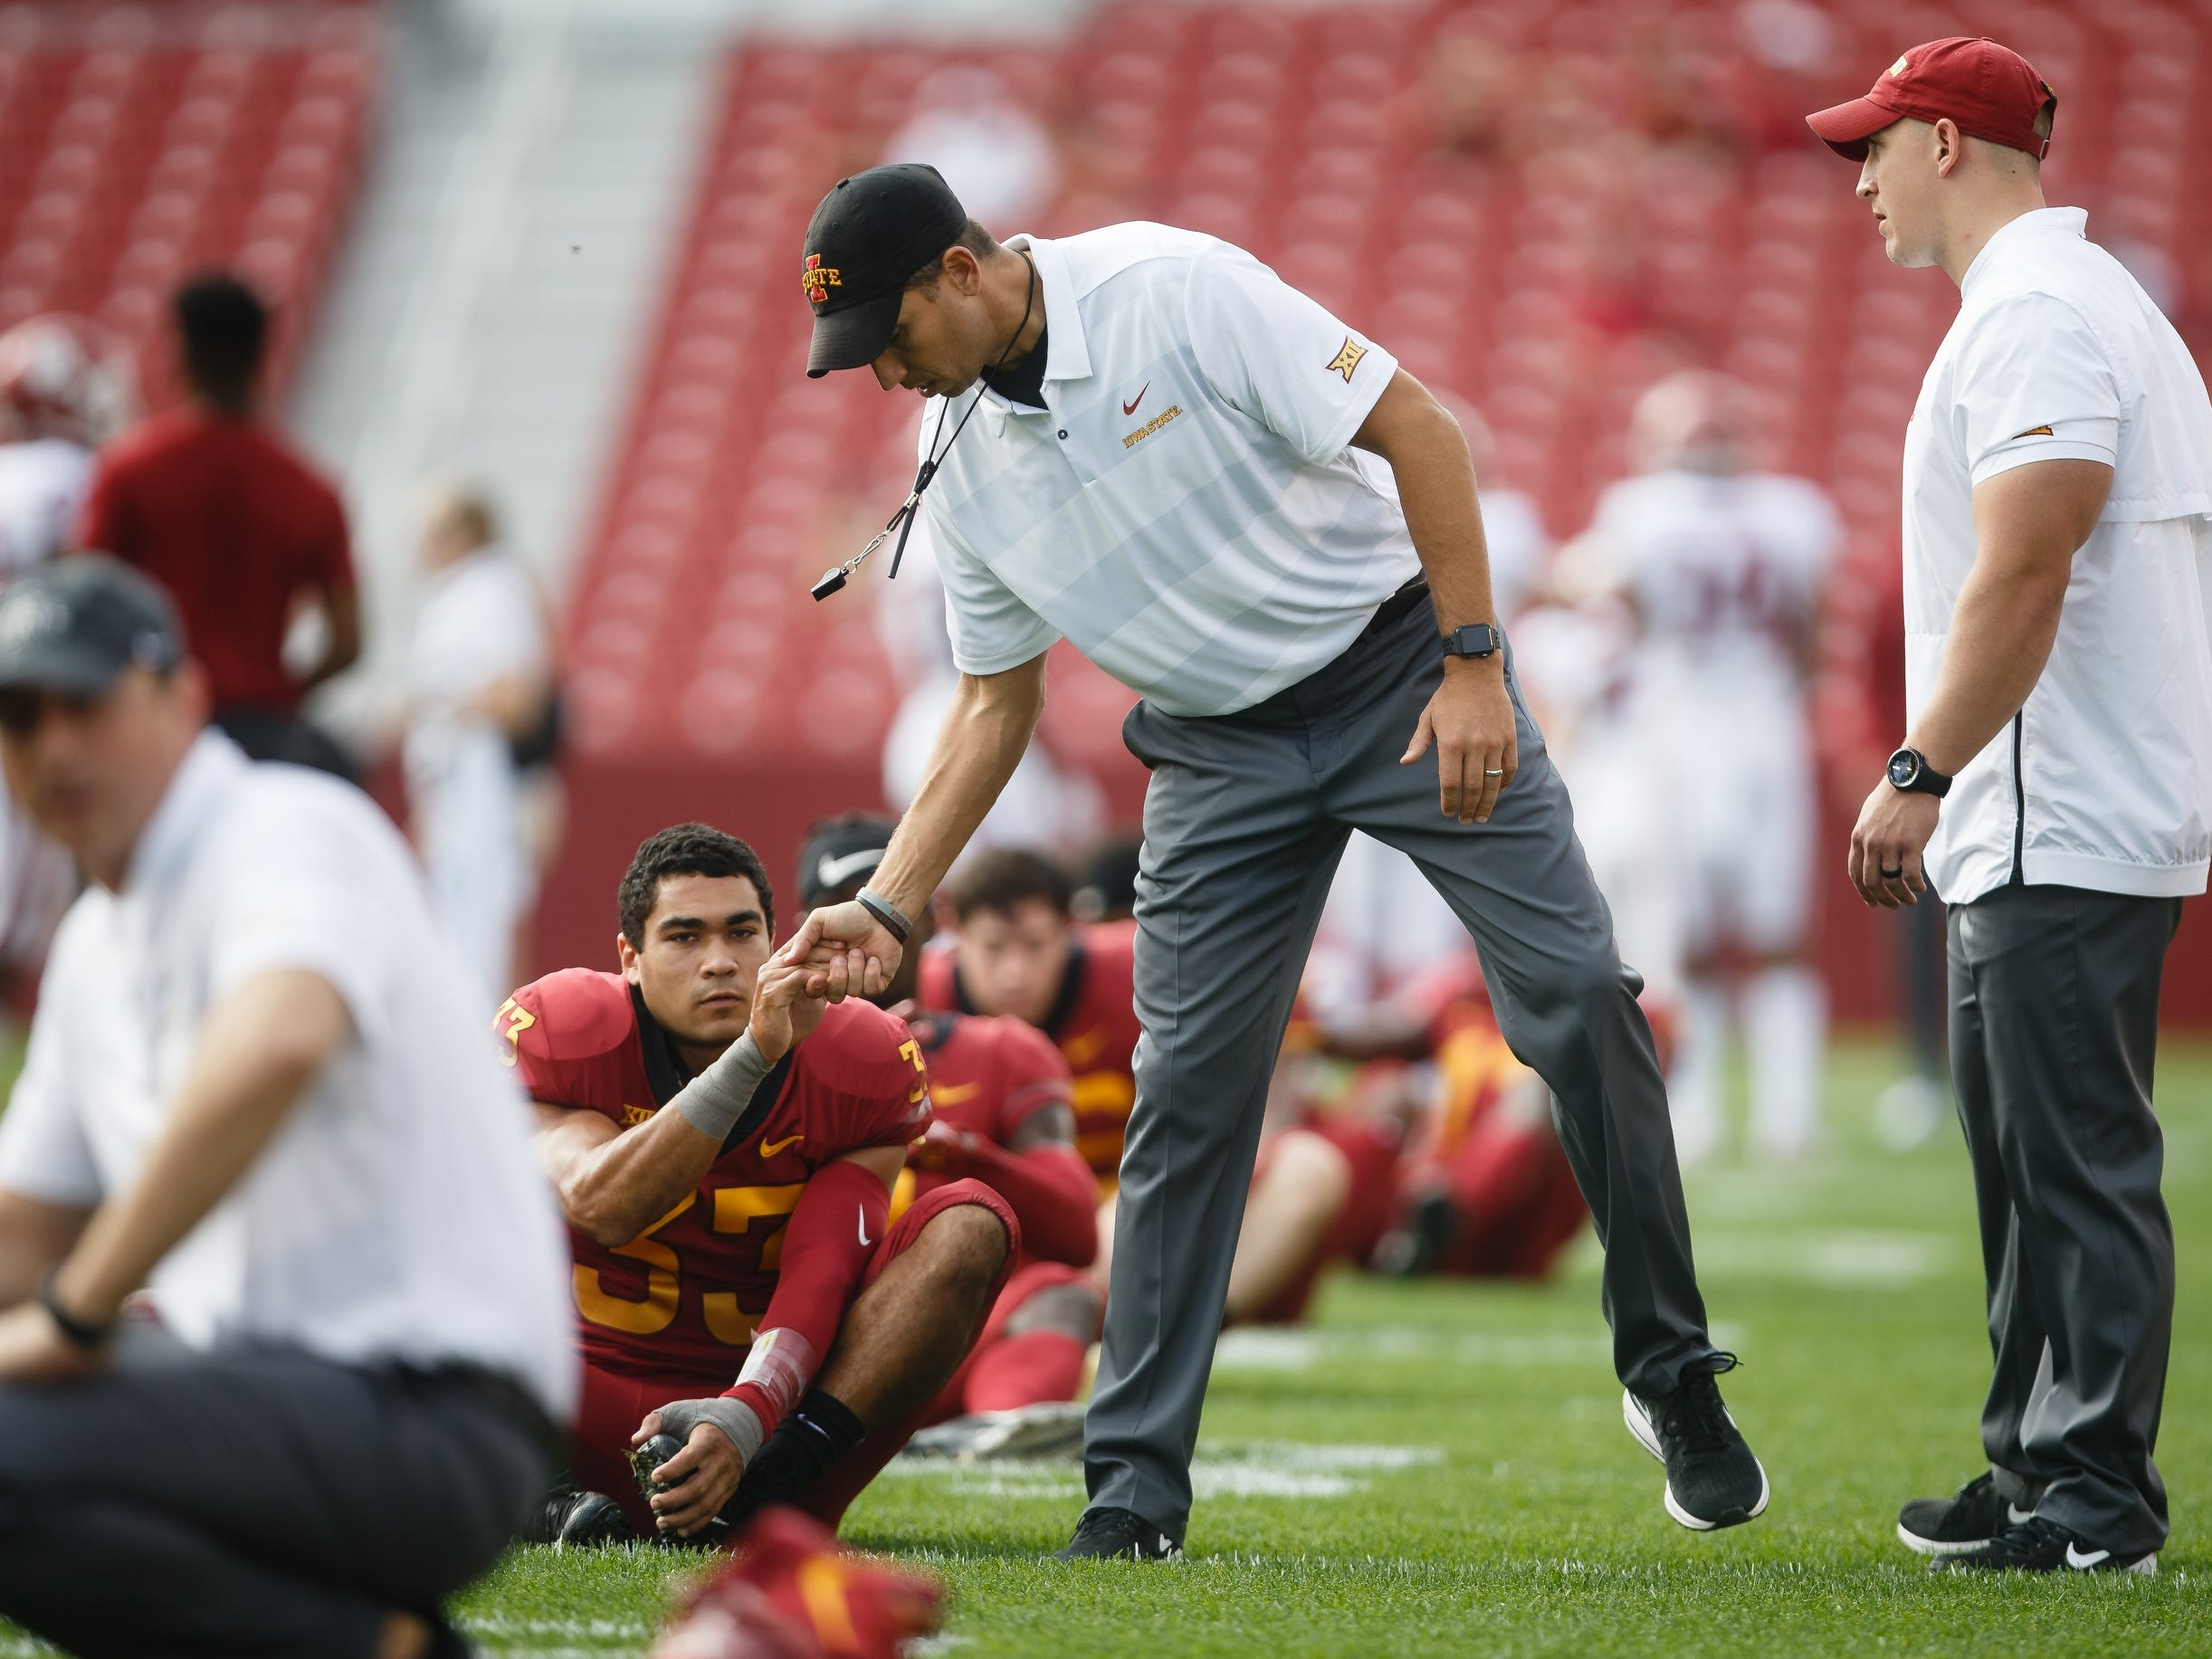 Iowa State head coach Matt Campbell walks around as his players warm up before their football game against Oklahoma at Jack Trice Stadium on Saturday, Sept. 15, 2018 in Ames. Oklahoma would go on to win 37-27.